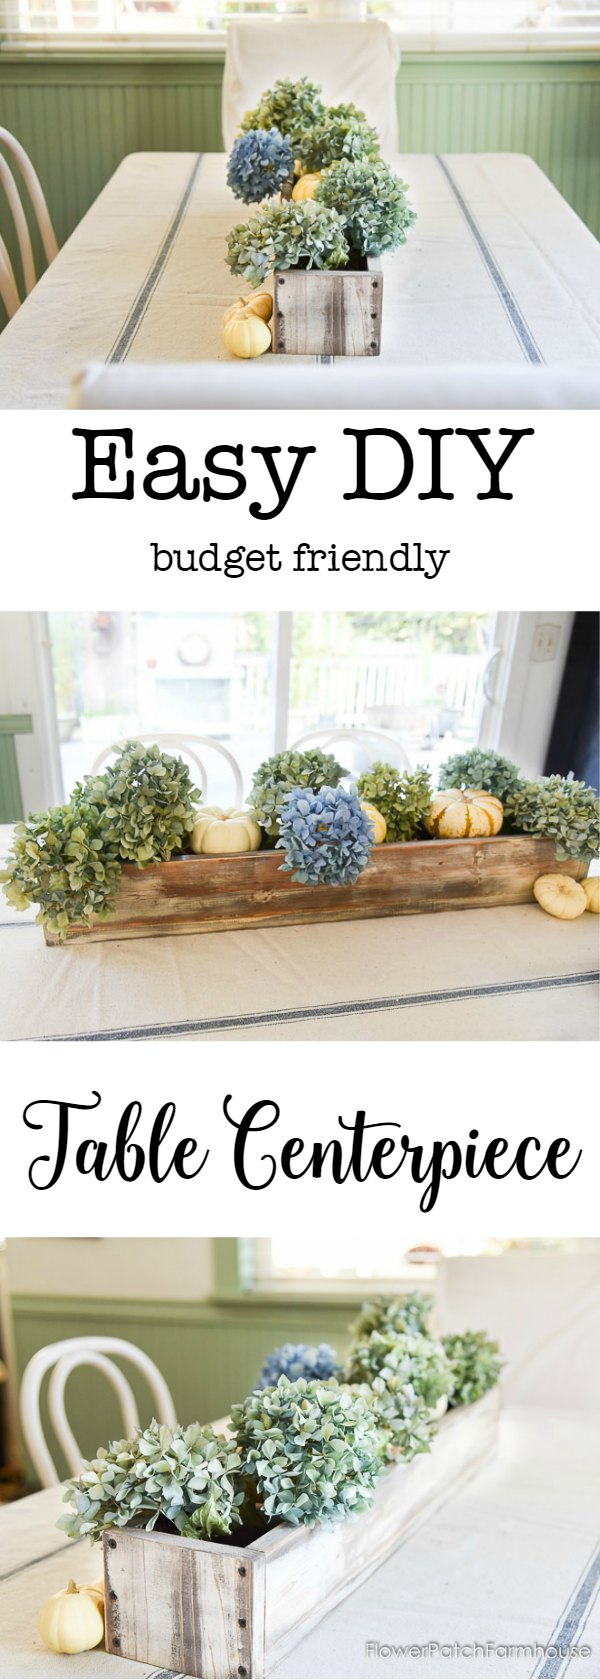 The perfect DIY centerpiece!  Easy to build on a budget, switch out for the seasons and move when you need more space on your table.  It's as practical as it is beautiful!